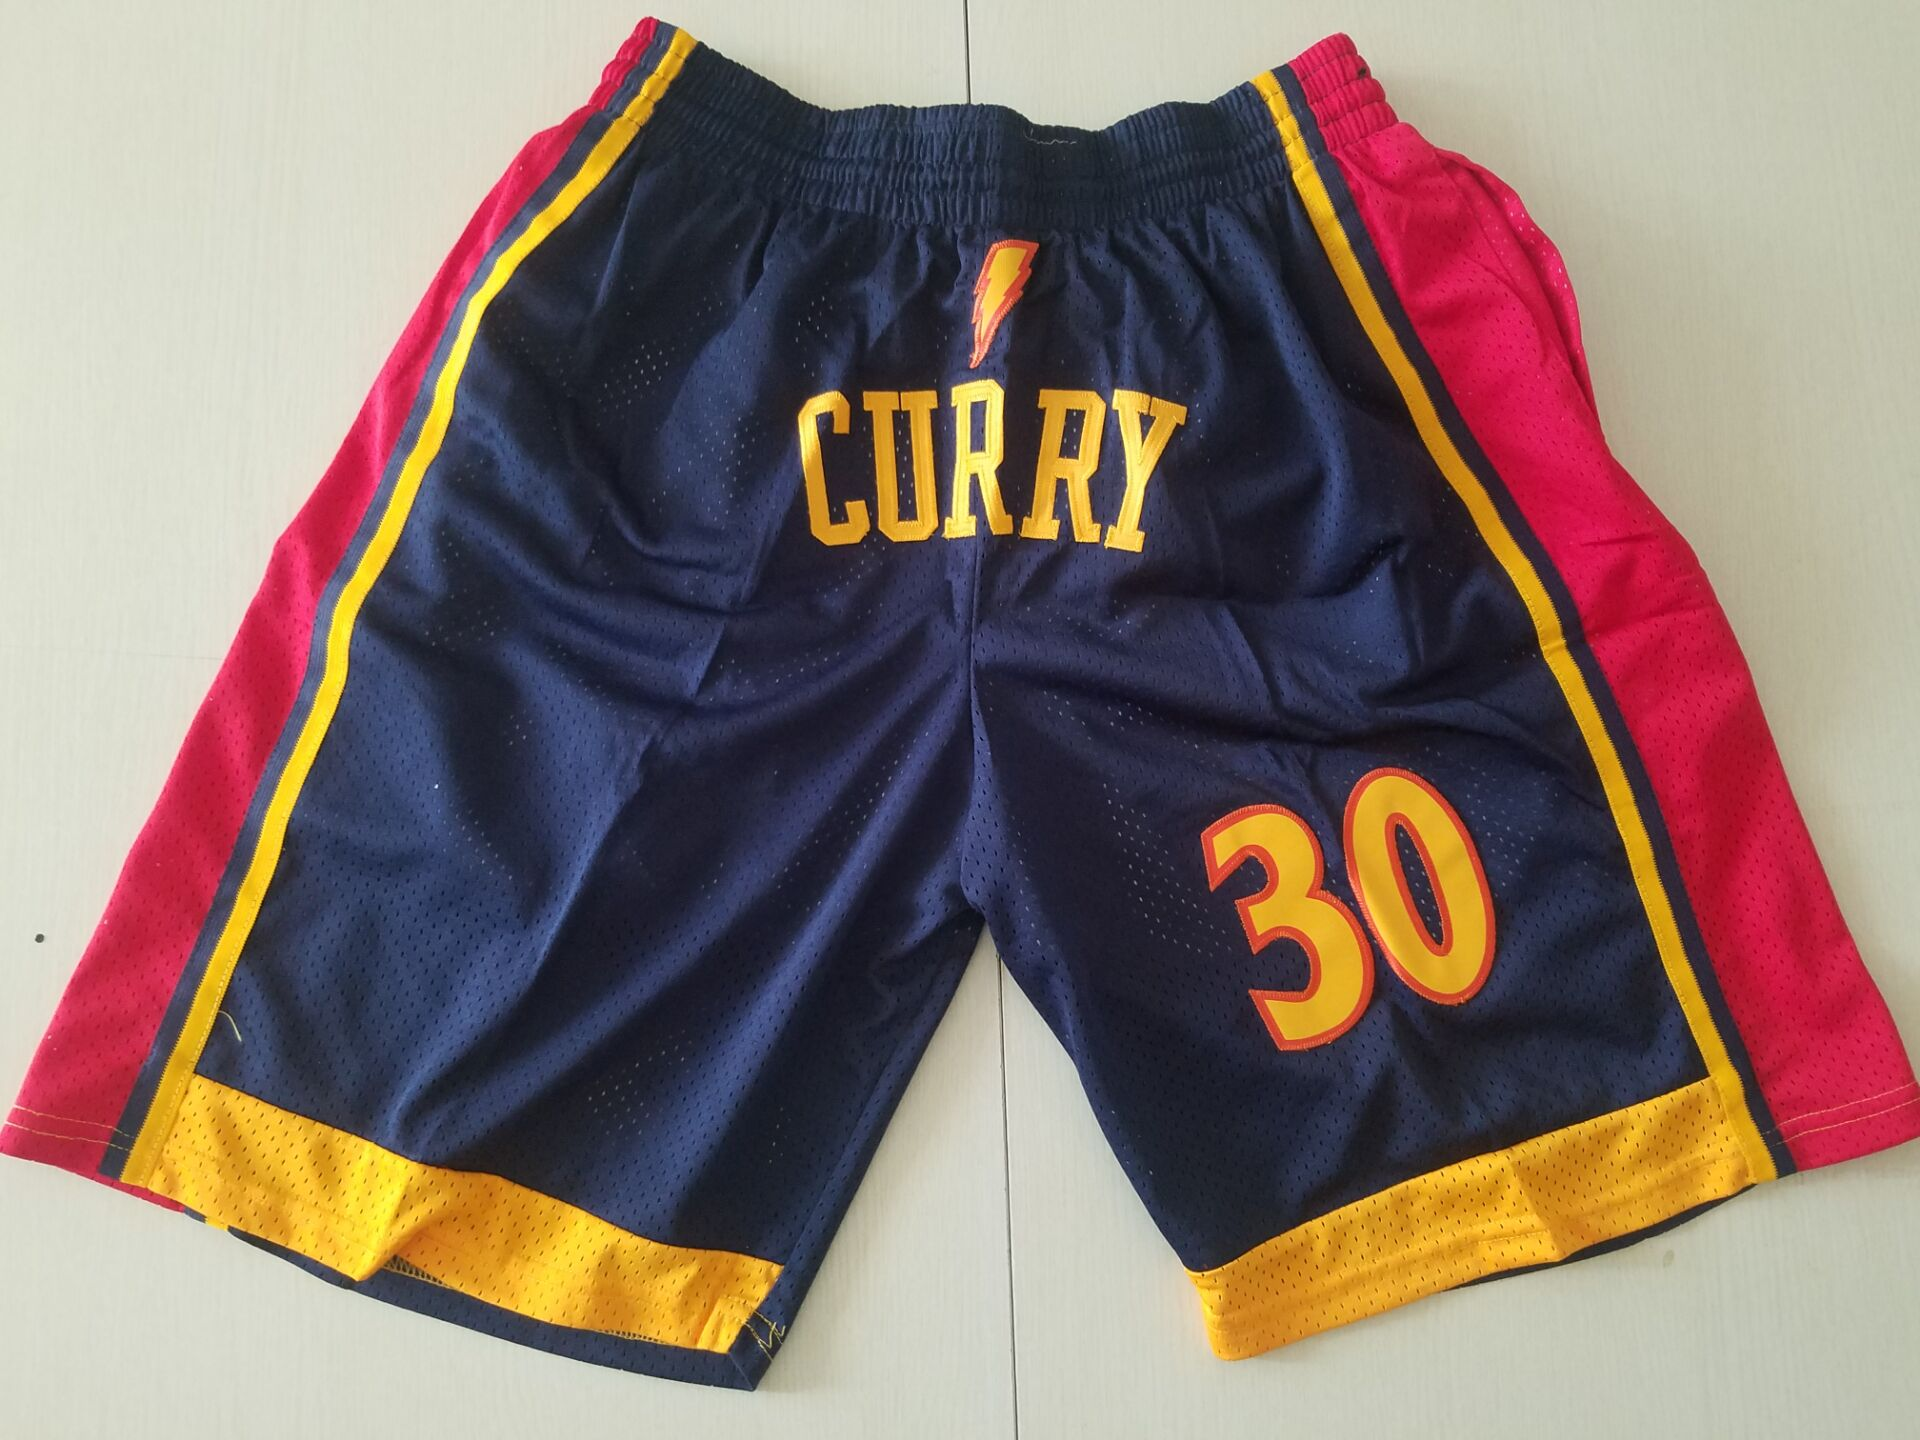 2020 Men NBA Golden State Warriors blue 30 Curry shorts